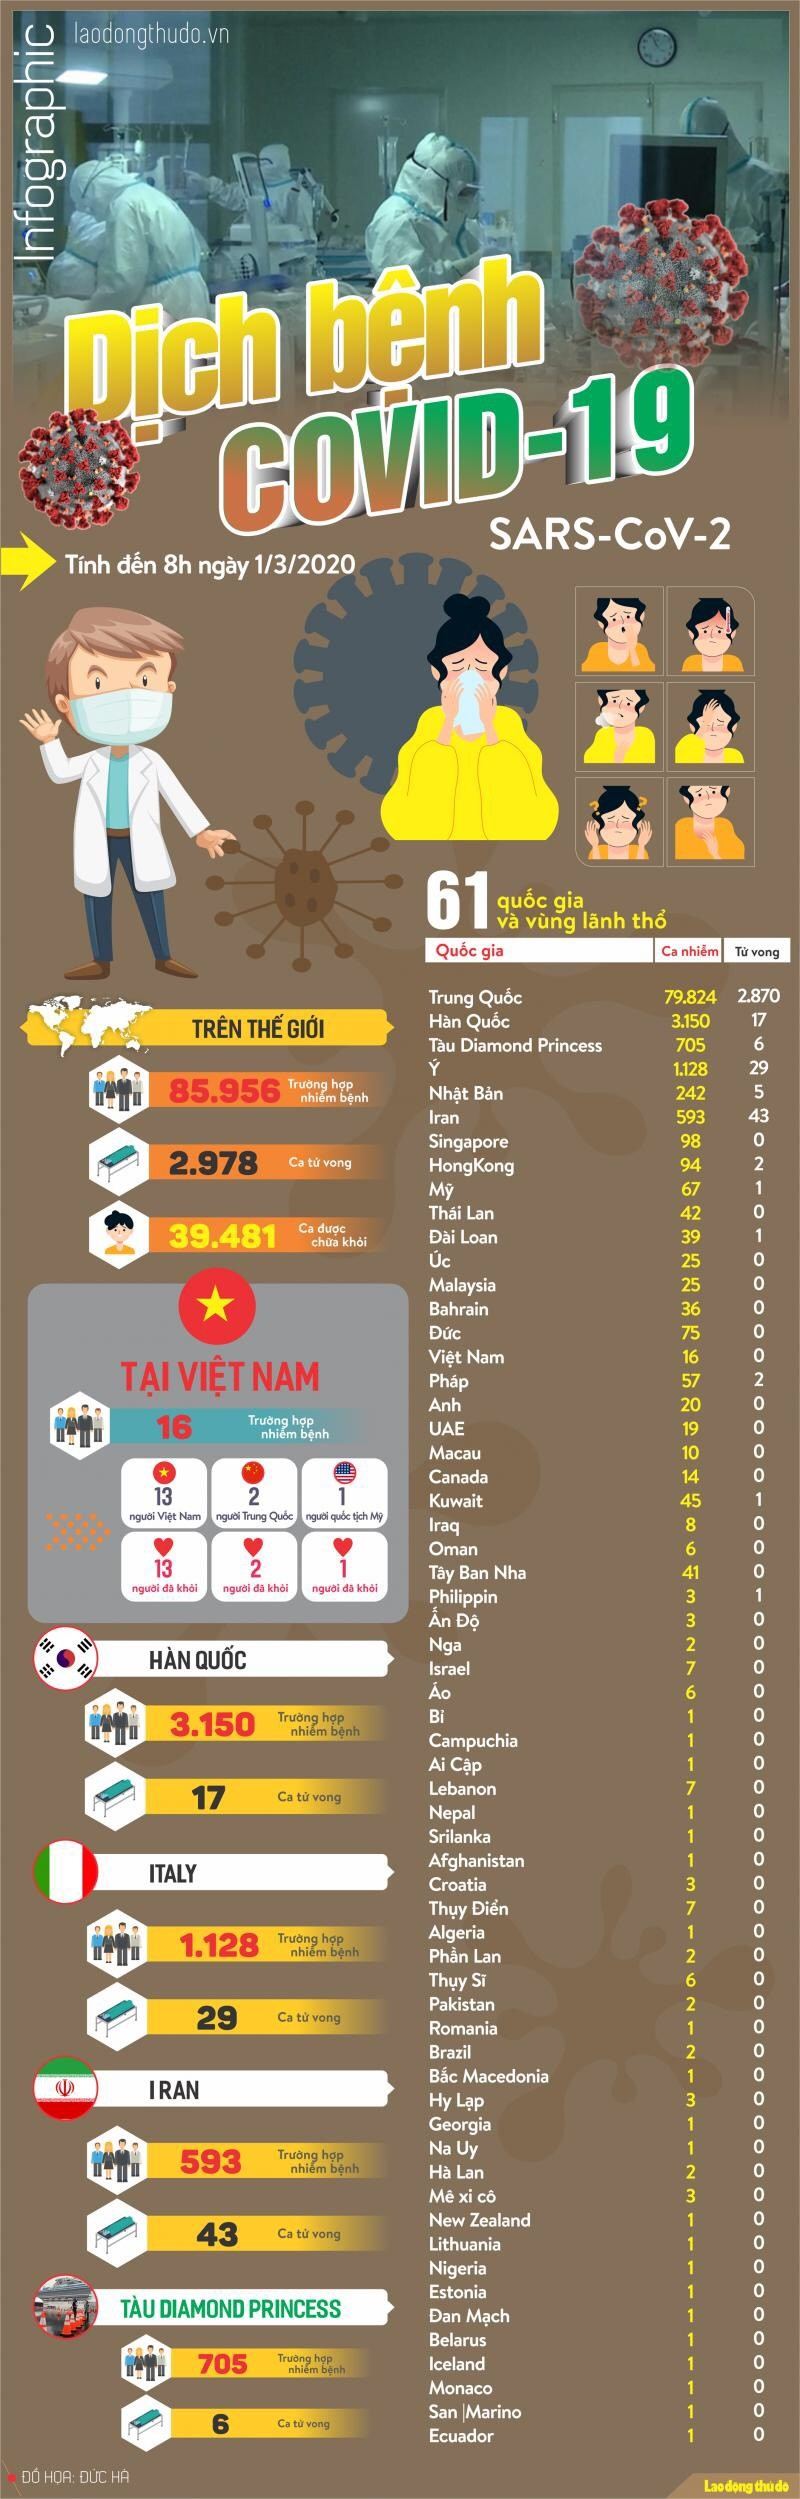 infographic cap nhat tinh hinh dich covid 19 ngay 13 my ghi nhan ca tu vong dau tien italy da co 29 nguoi chet